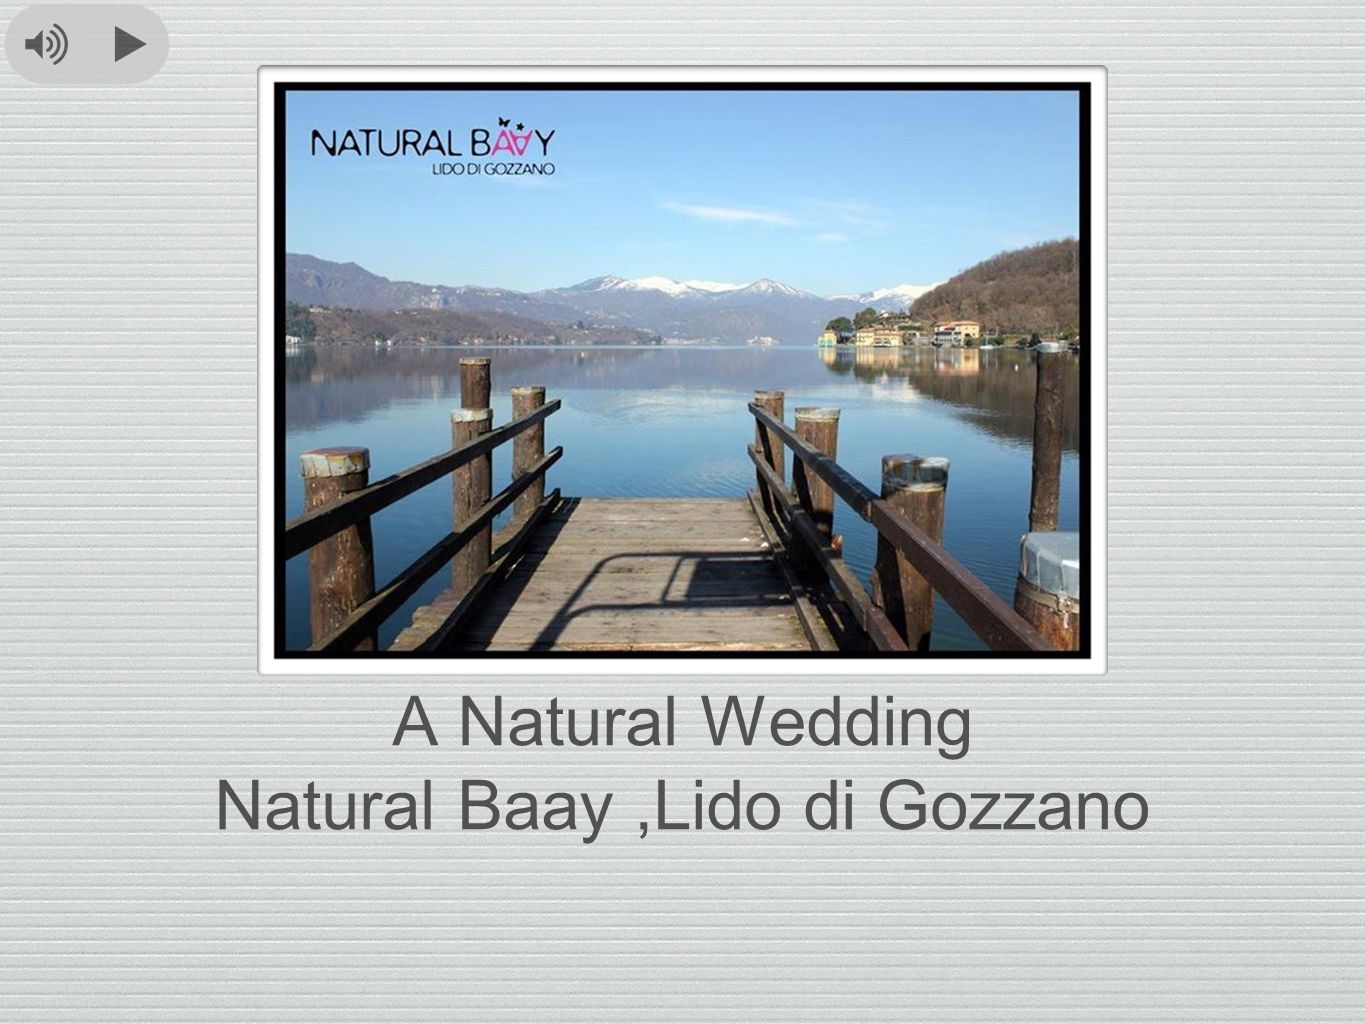 A Natural Wedding Natural Baay ,Lido di Gozzano